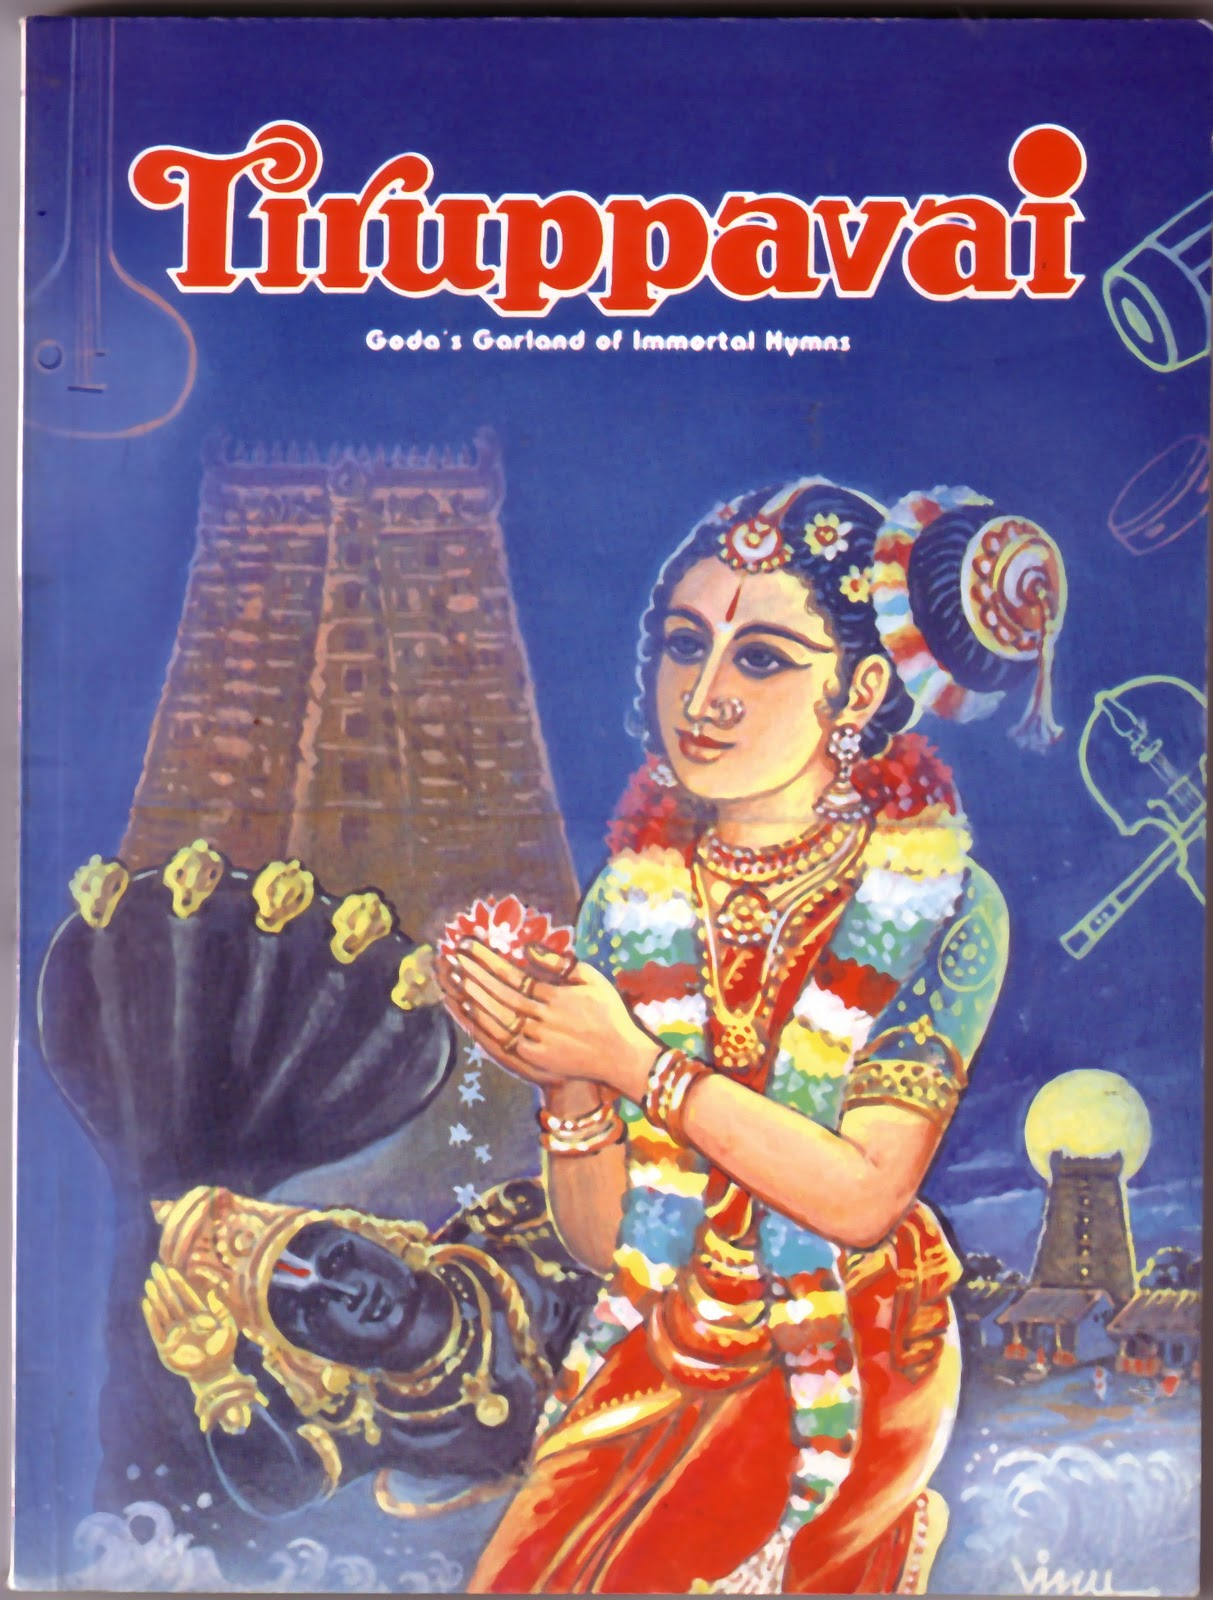 Of thiruppavai